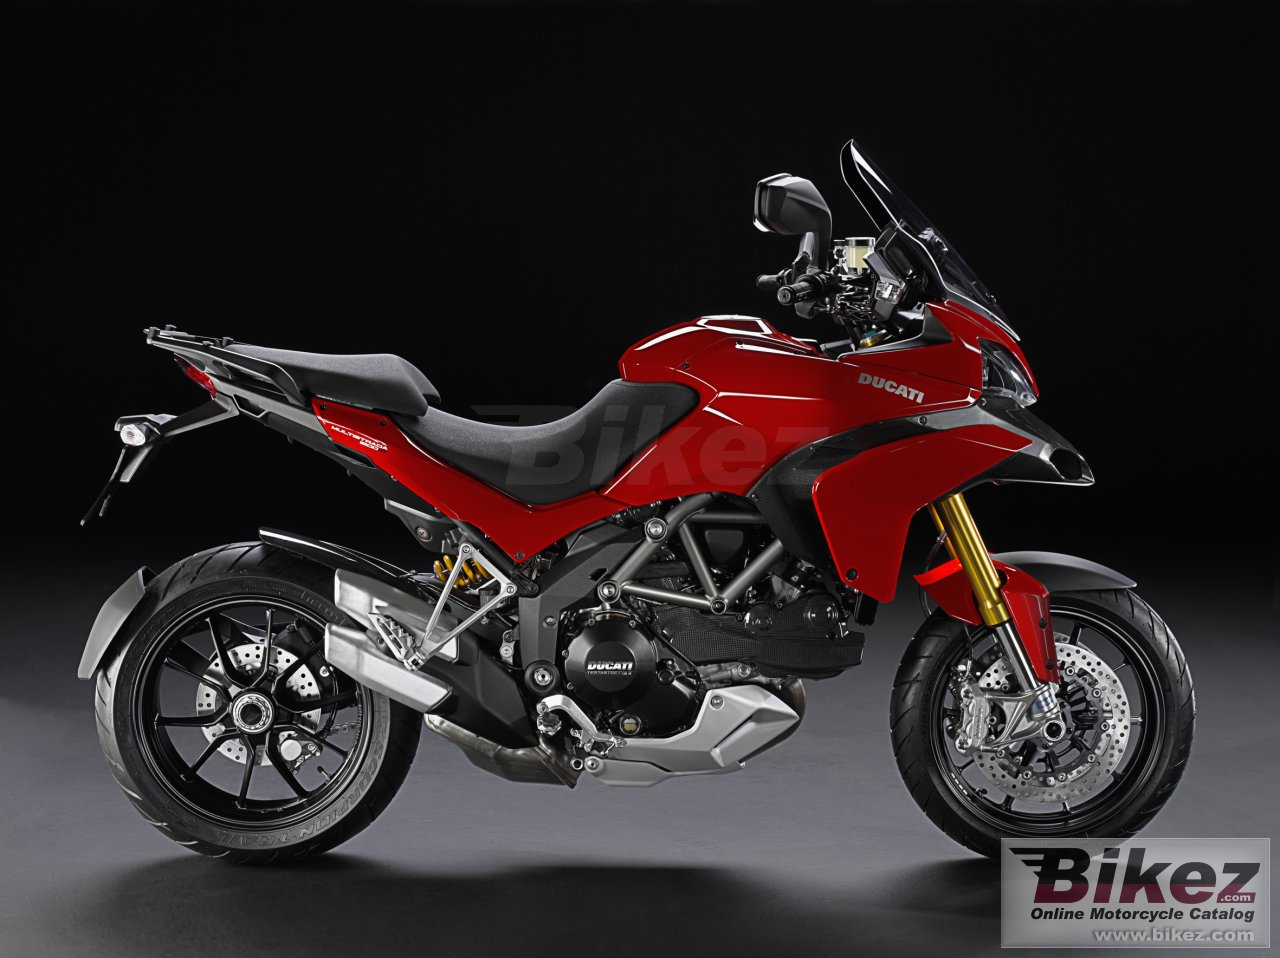 Big Ducati multistrada 1200 s sport picture and wallpaper from Bikez.com